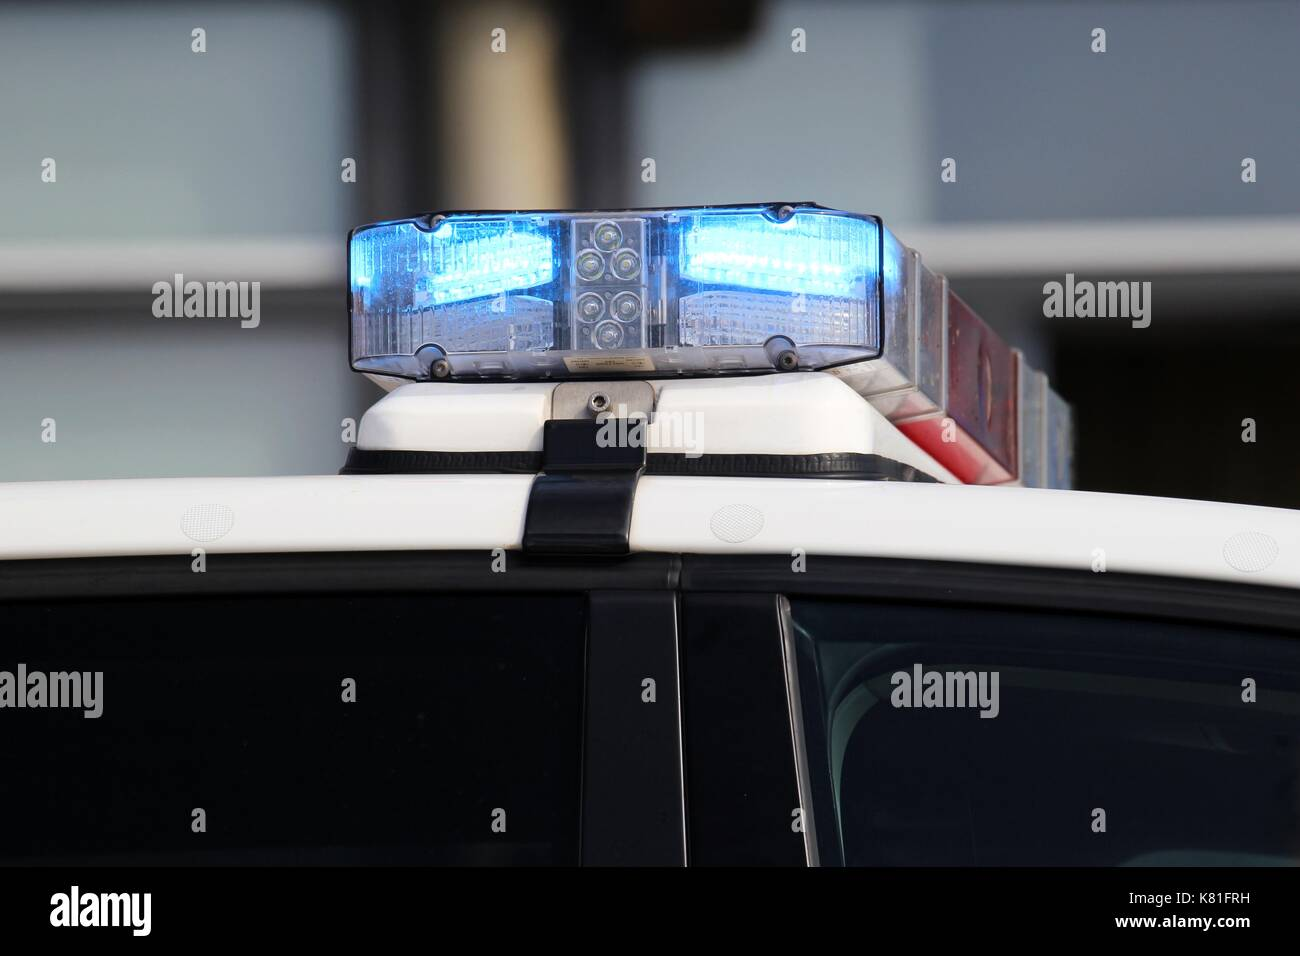 police car with active blue emergency vehicle lighting Stock Photo